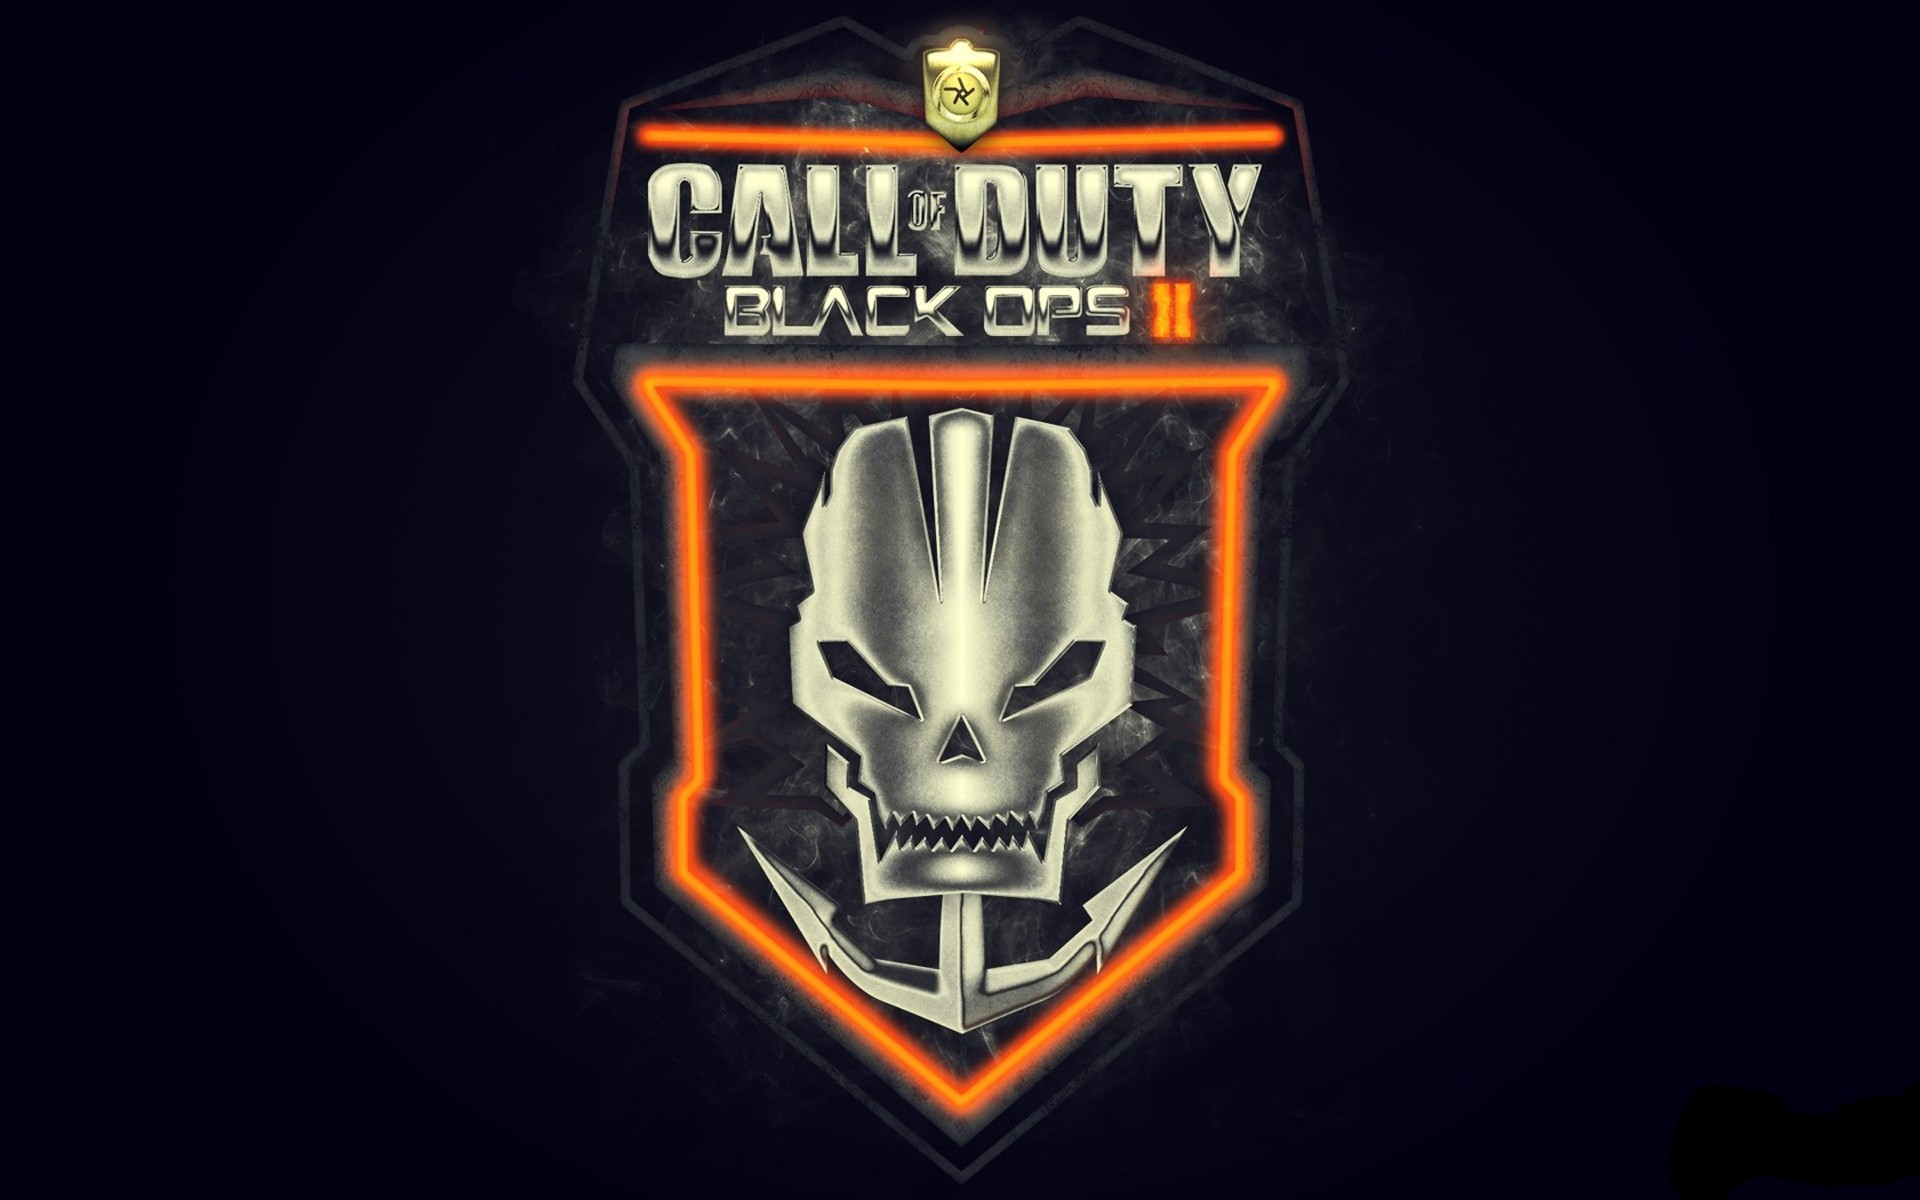 Call of Duty Black Ops II Wallpaper Logo is high definition wallpaper. You  can make Call of Duty: Black Ops II Wallpaper Logo For your Desktop  Background,